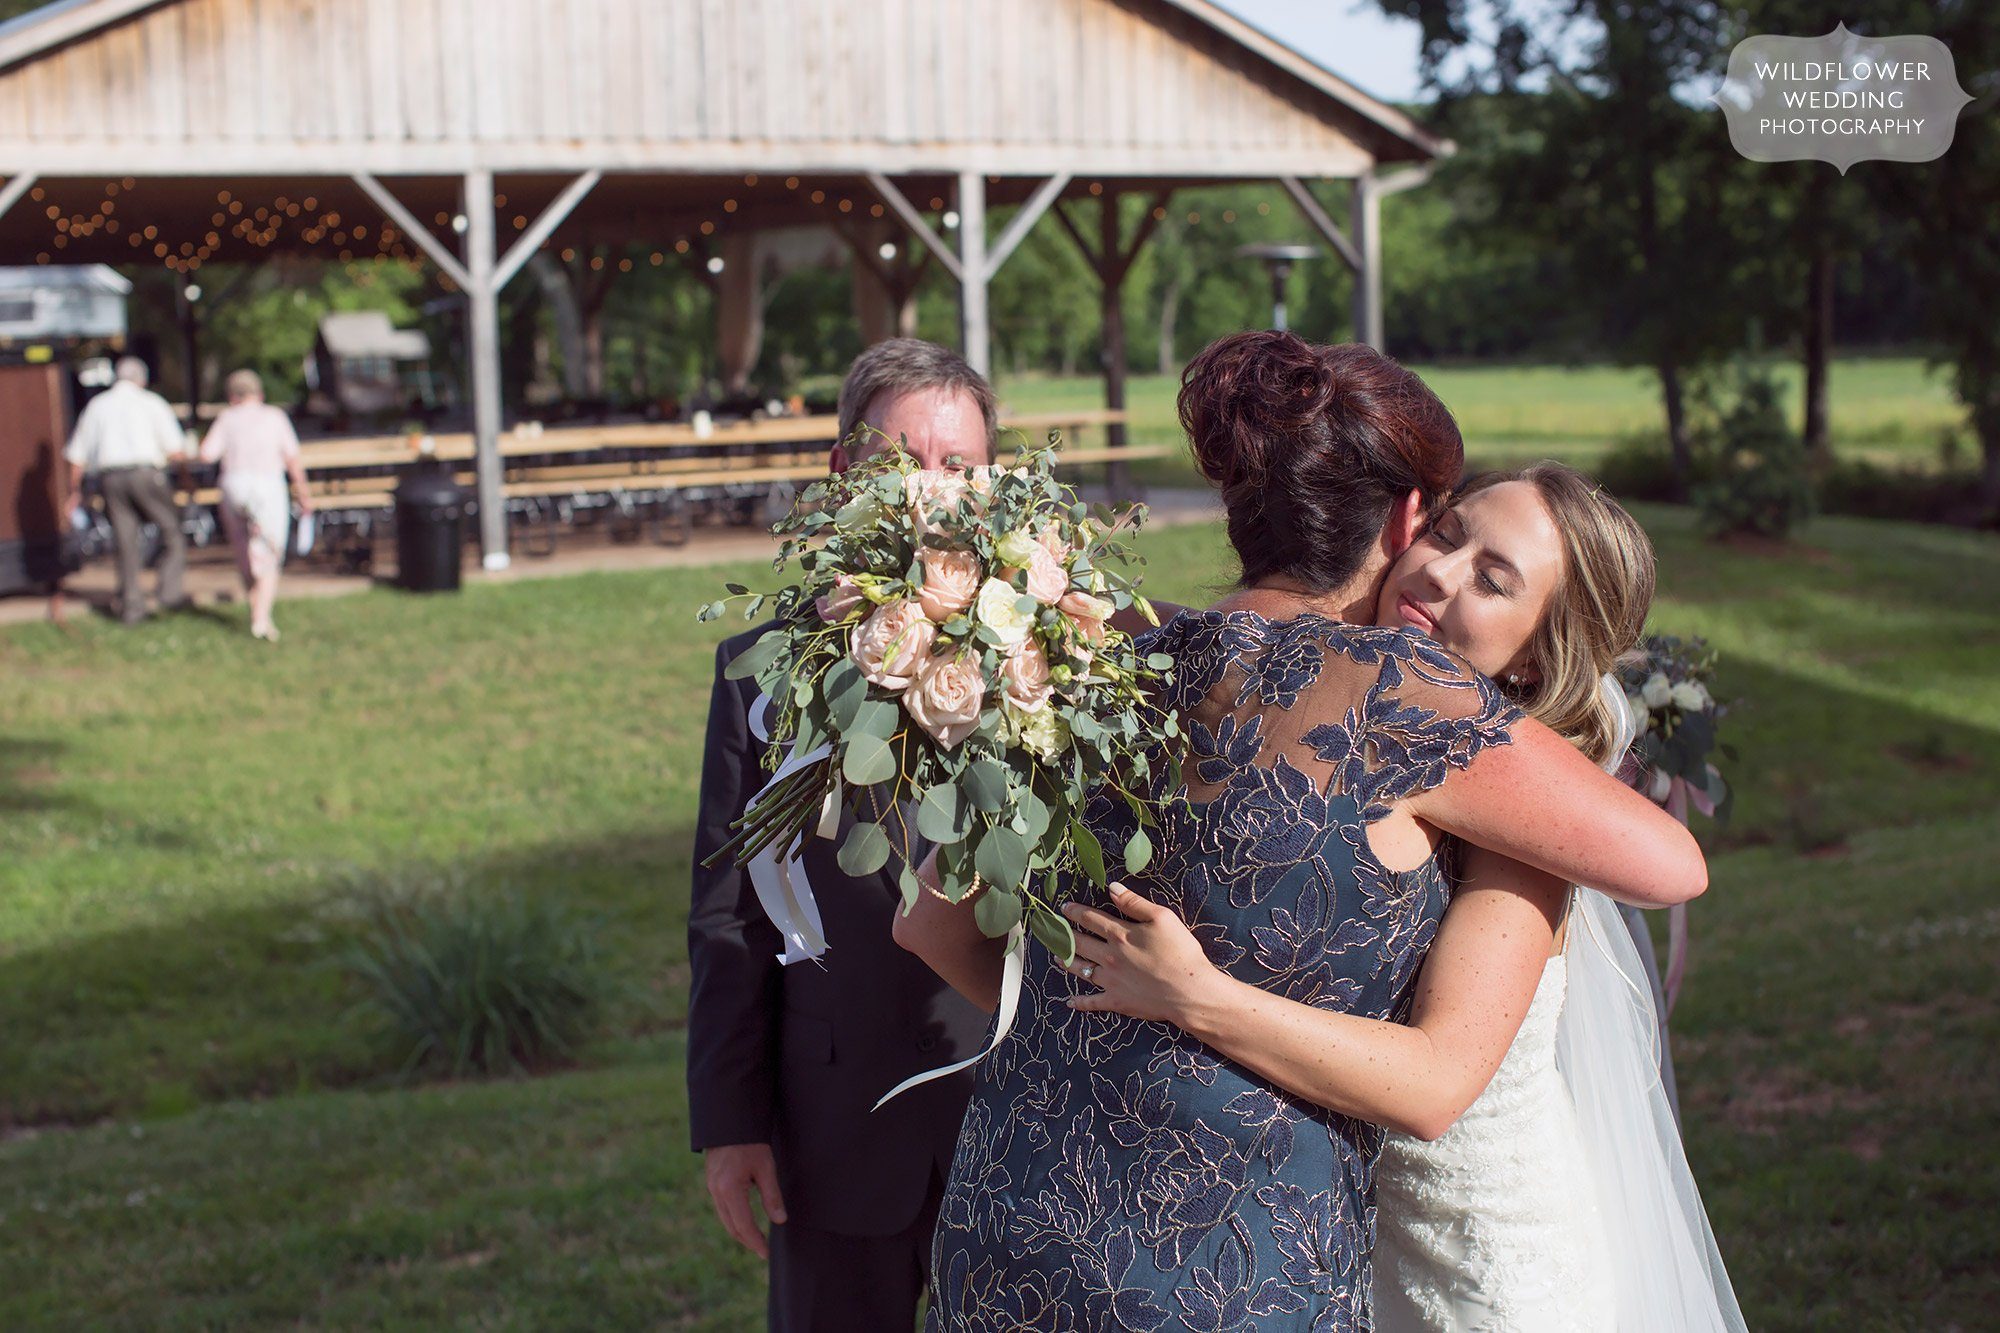 Emotional photo of the bride and her mom hugging after the barn ceremony.